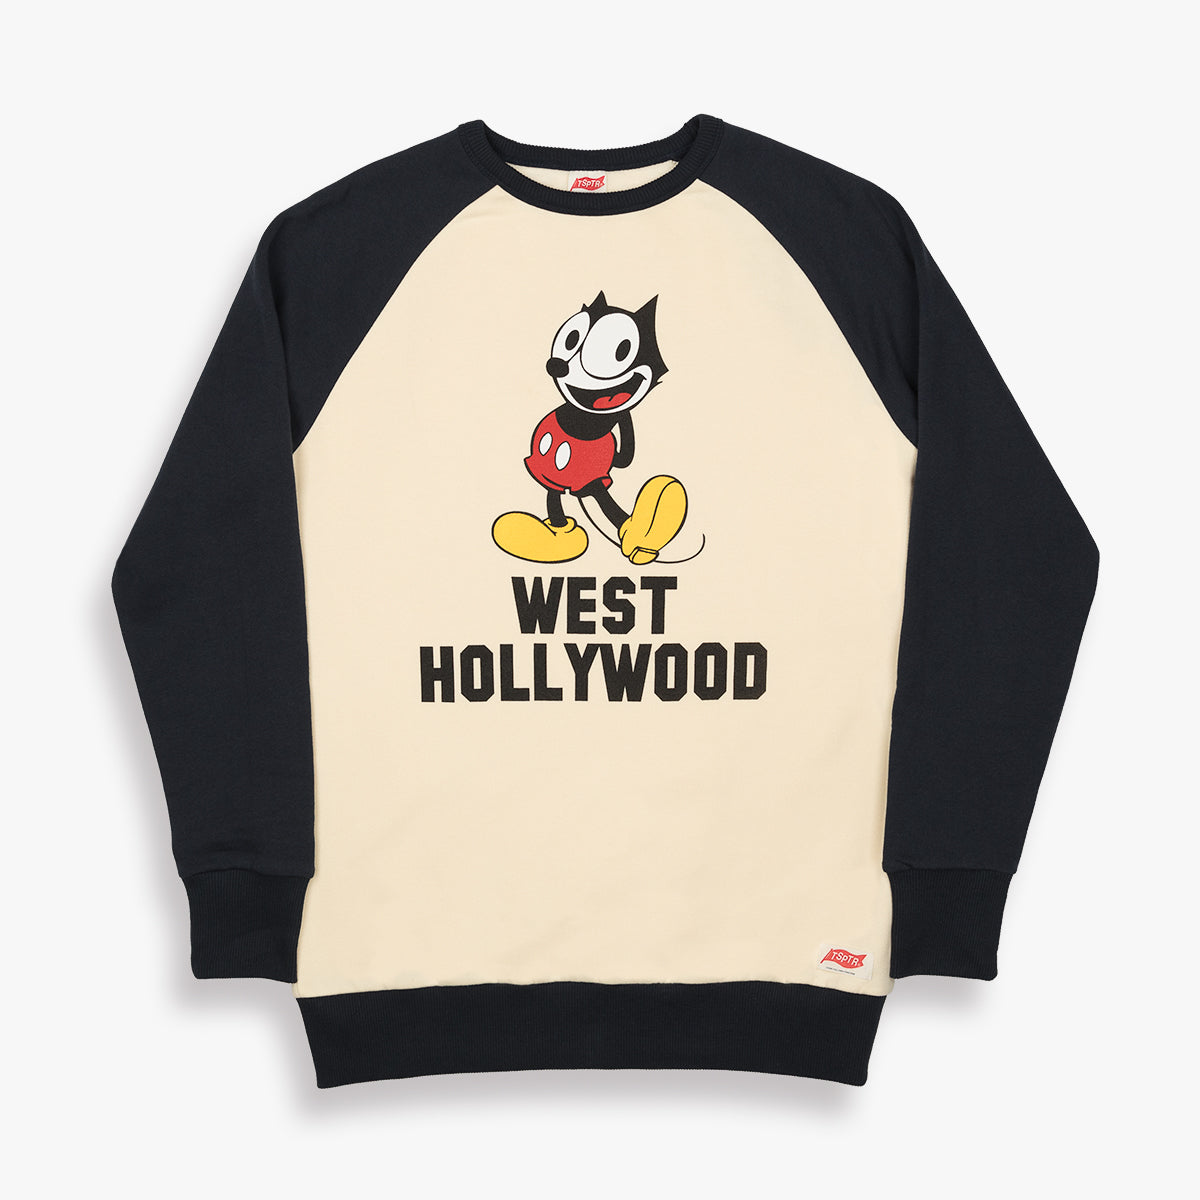 WEST HOLLYWOOD SWEATSHIRT